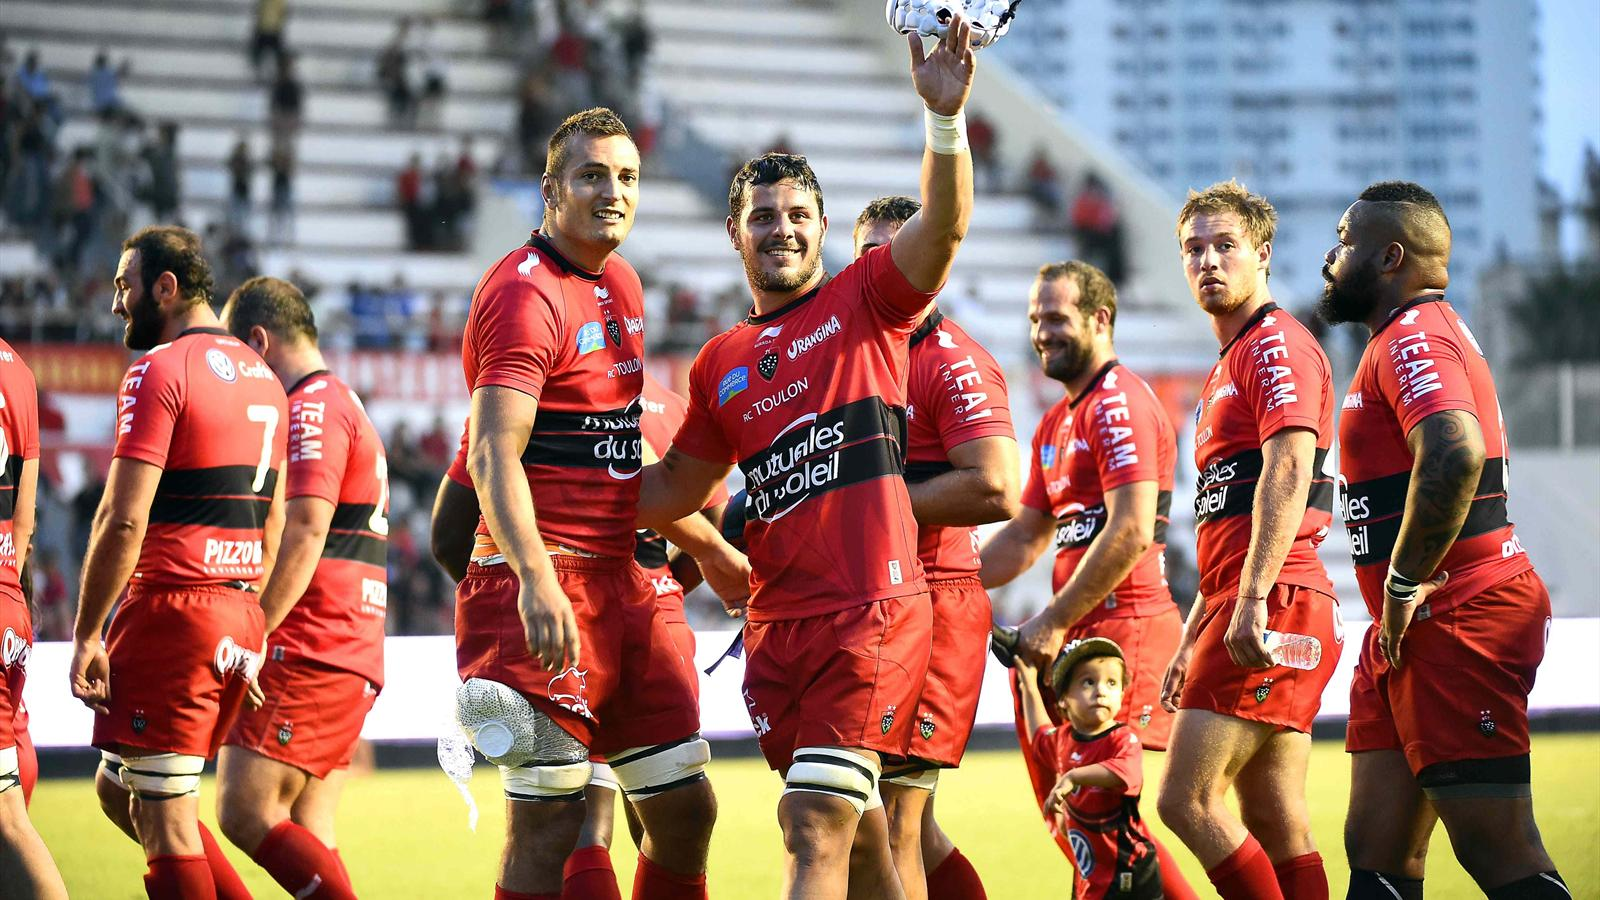 rugby top 14 match oyonnax vs rc toulon en direct streaming sur canal sport d s 20h45 ibuzz365. Black Bedroom Furniture Sets. Home Design Ideas